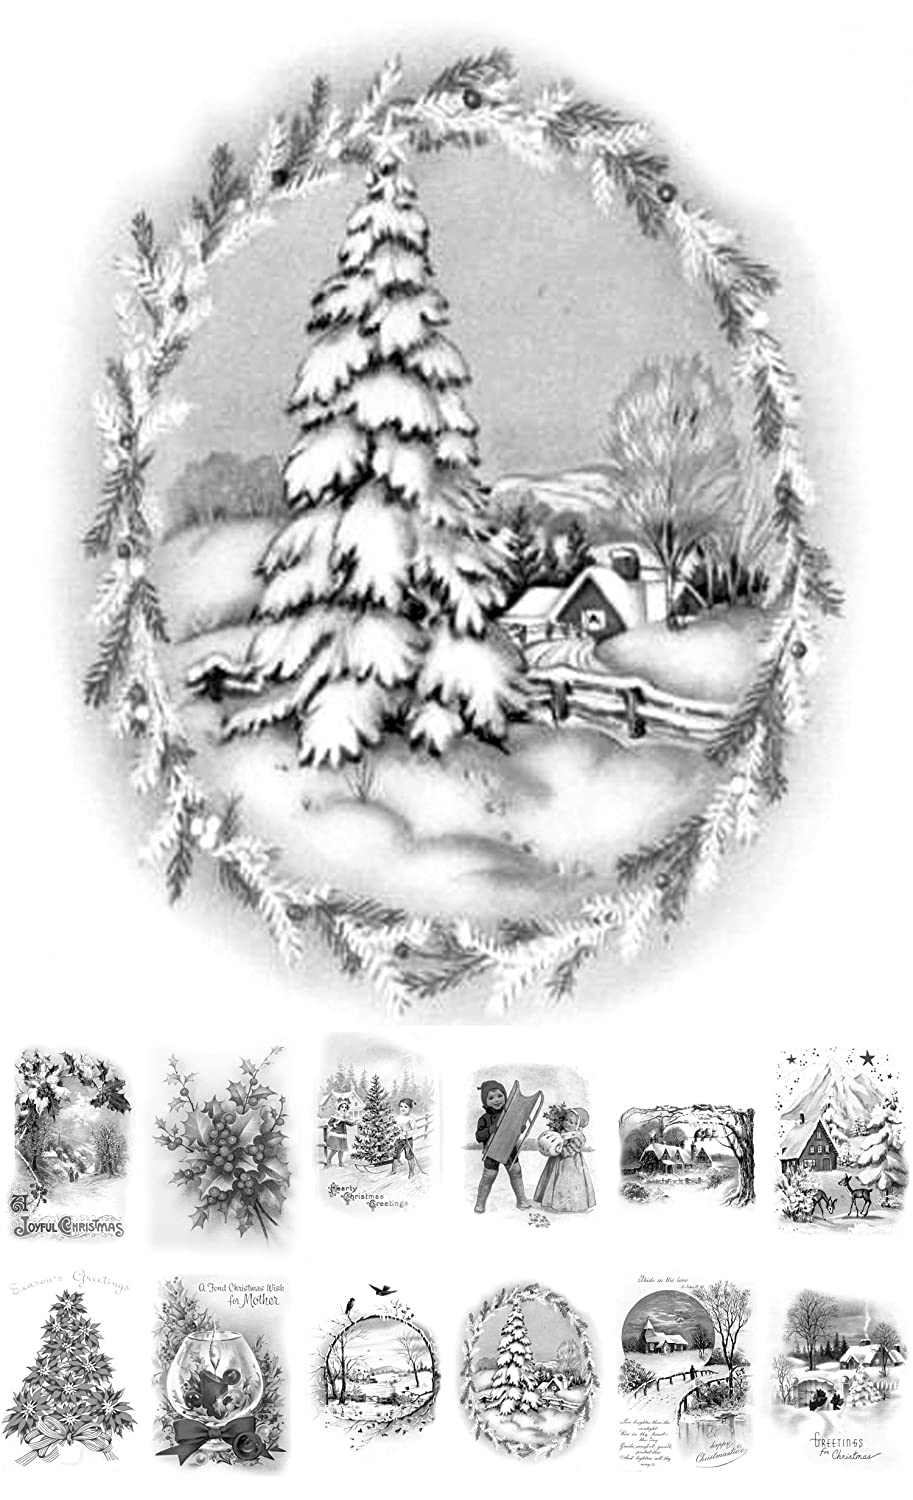 Adult Coloring Grayscale Cards (24 cards 4x6) Christmas Tree Landscapes Santa FLONZ Vintage Designs for Adult Coloring